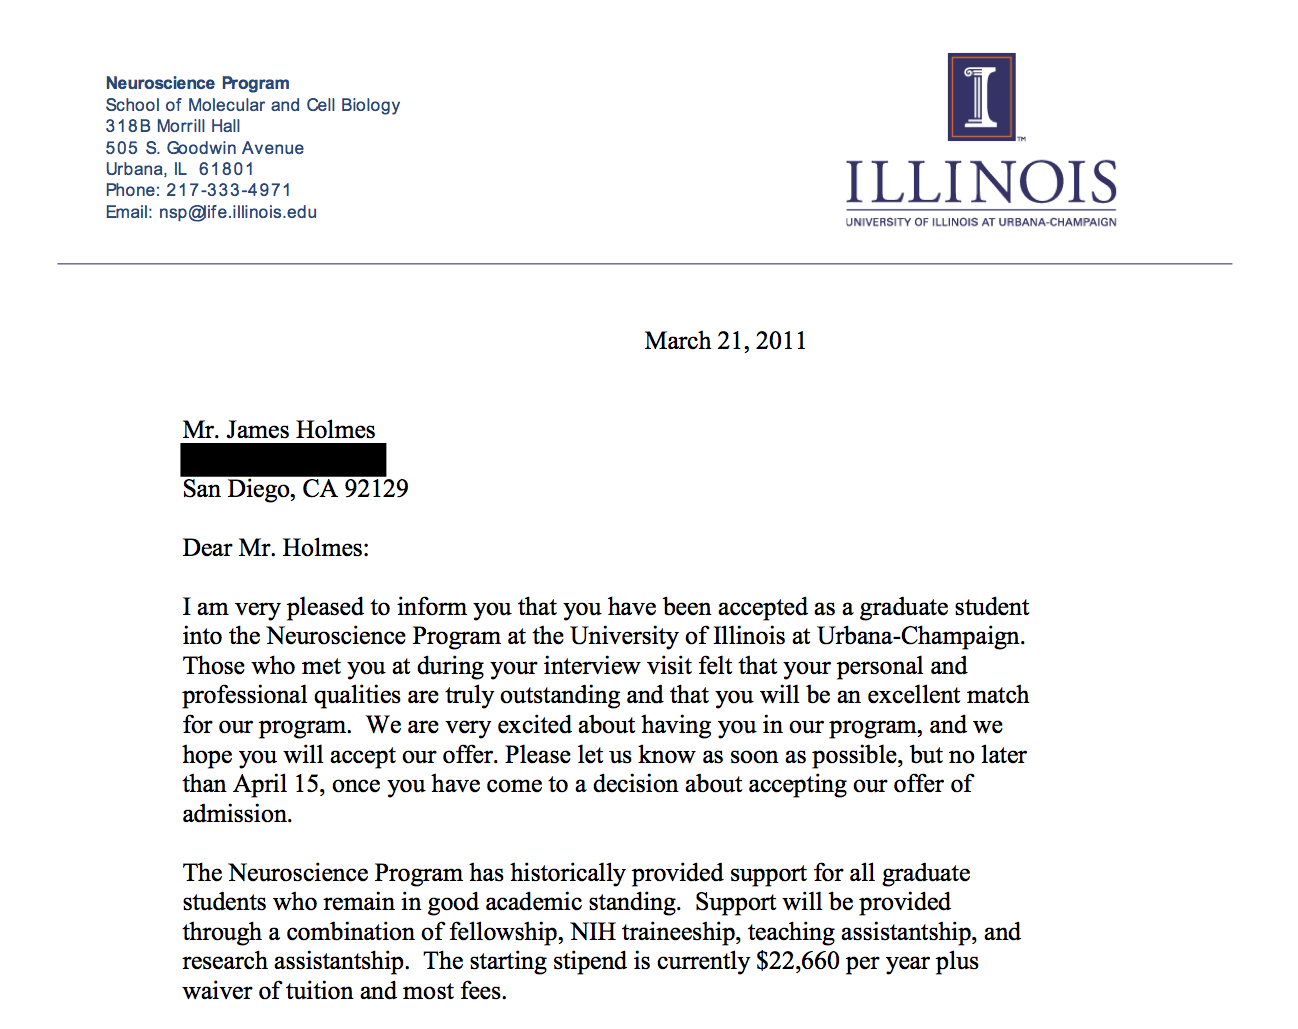 uiuc letter of recommendation